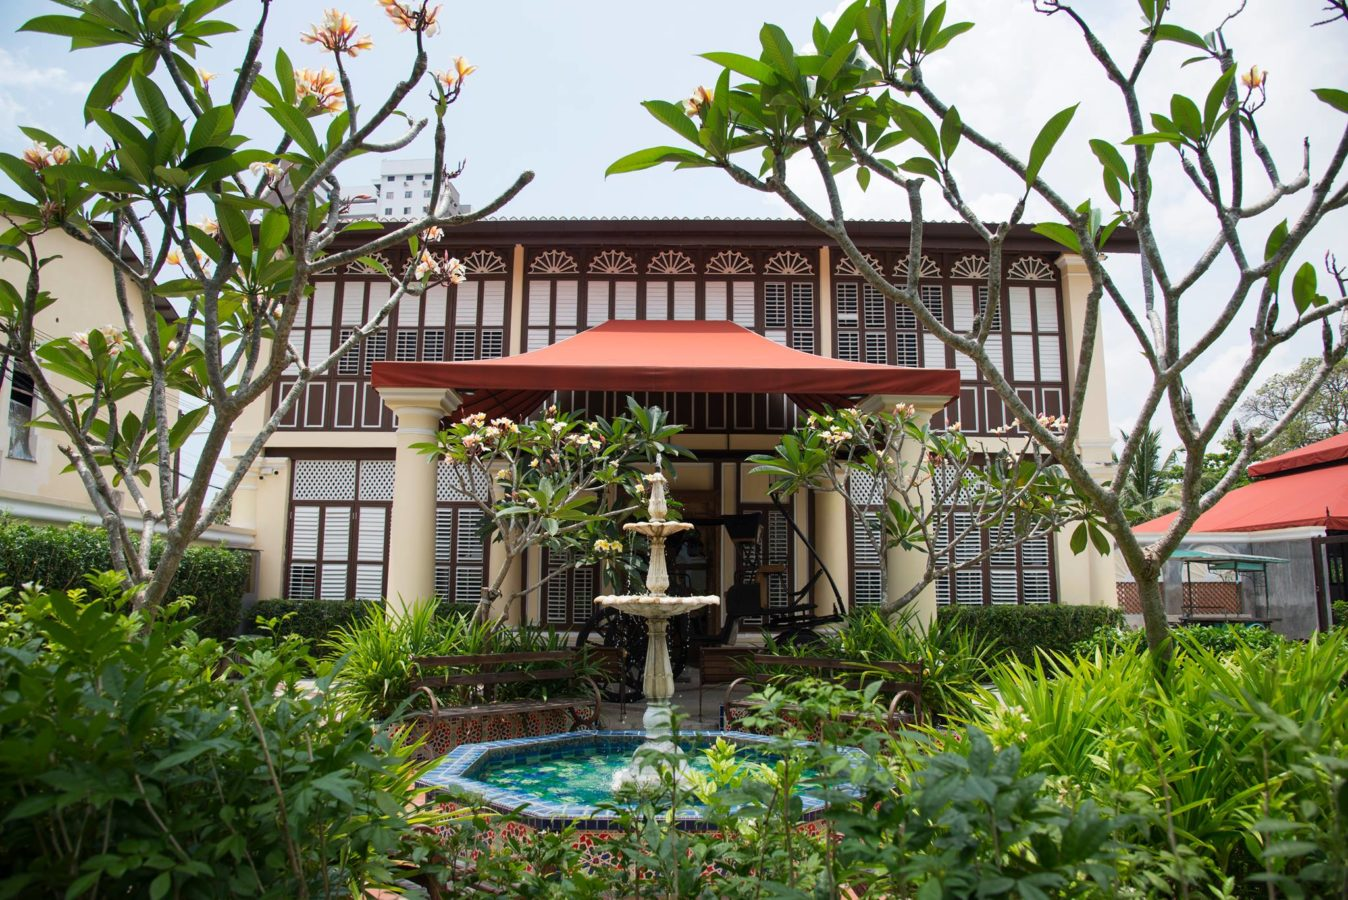 15 of Penang's most charming hotels, if you're in the mood to splurge